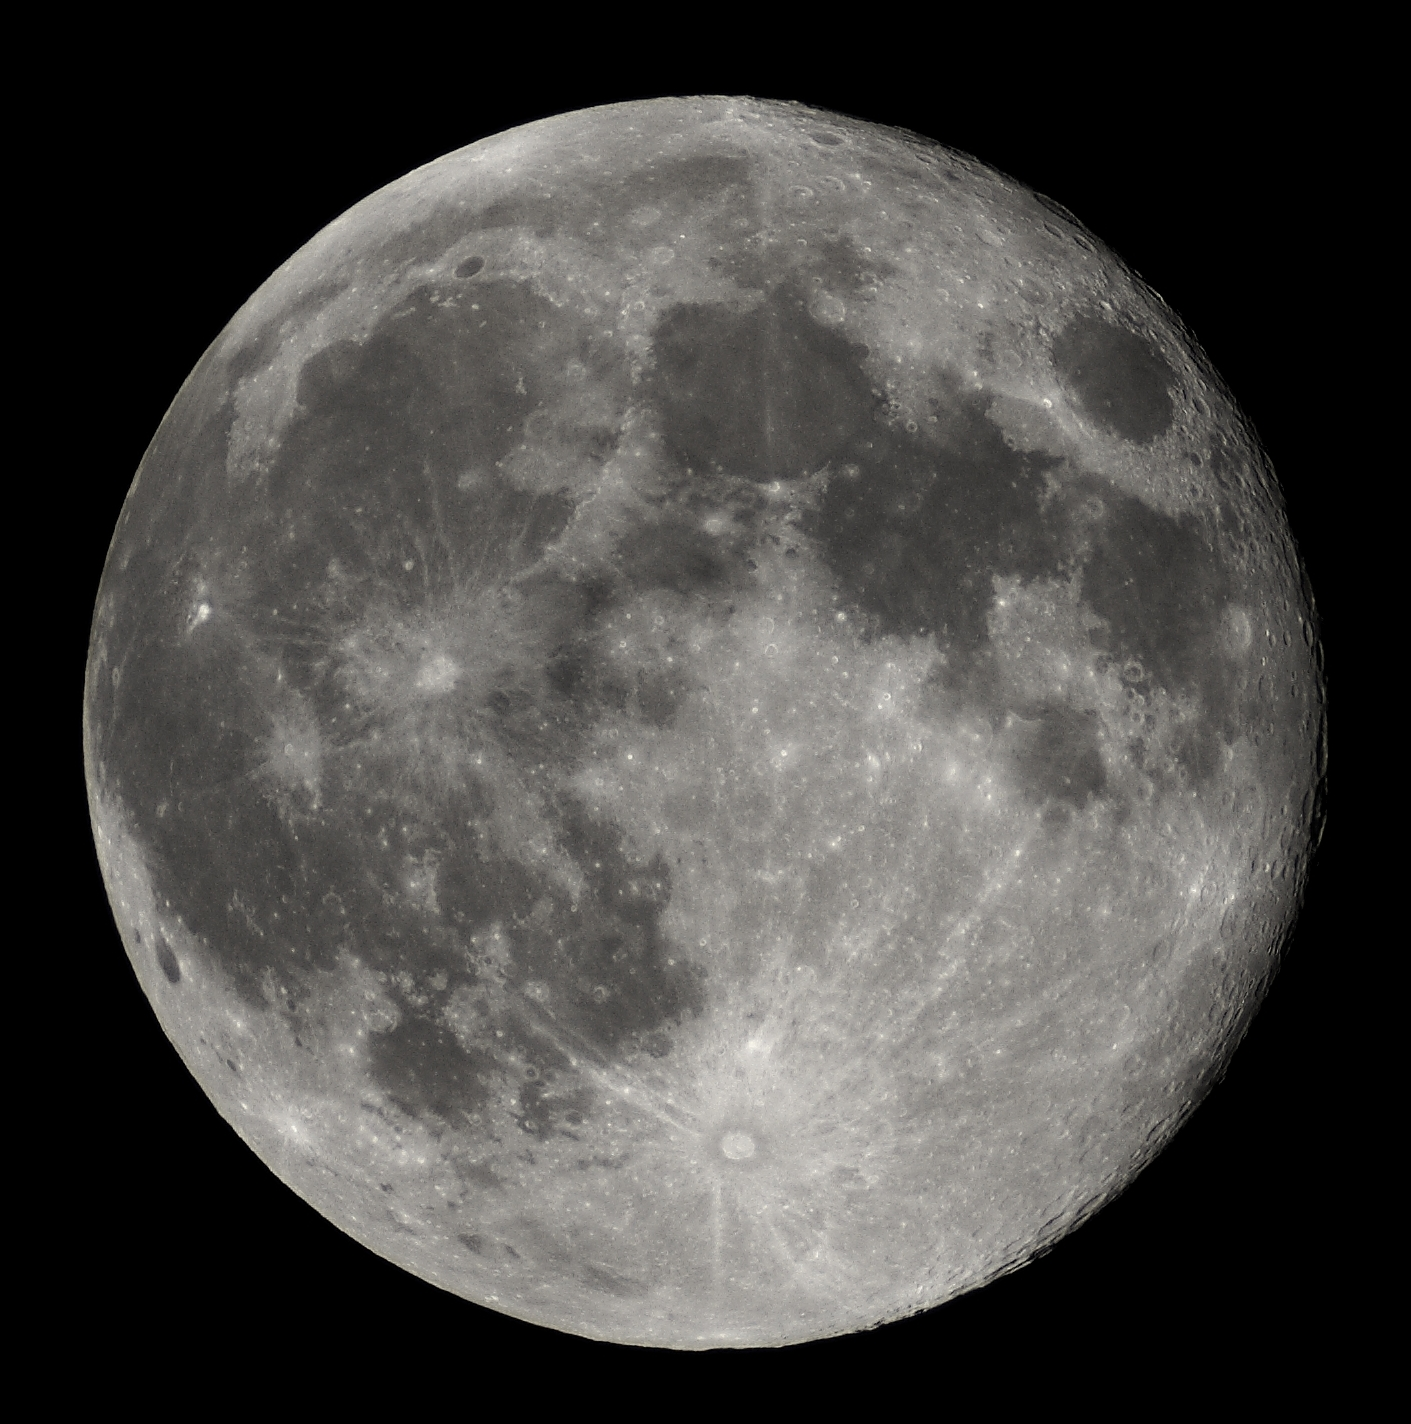 File:FULL MOON Luc Viatour.jpg - Wikipedia, the free encyclopedia